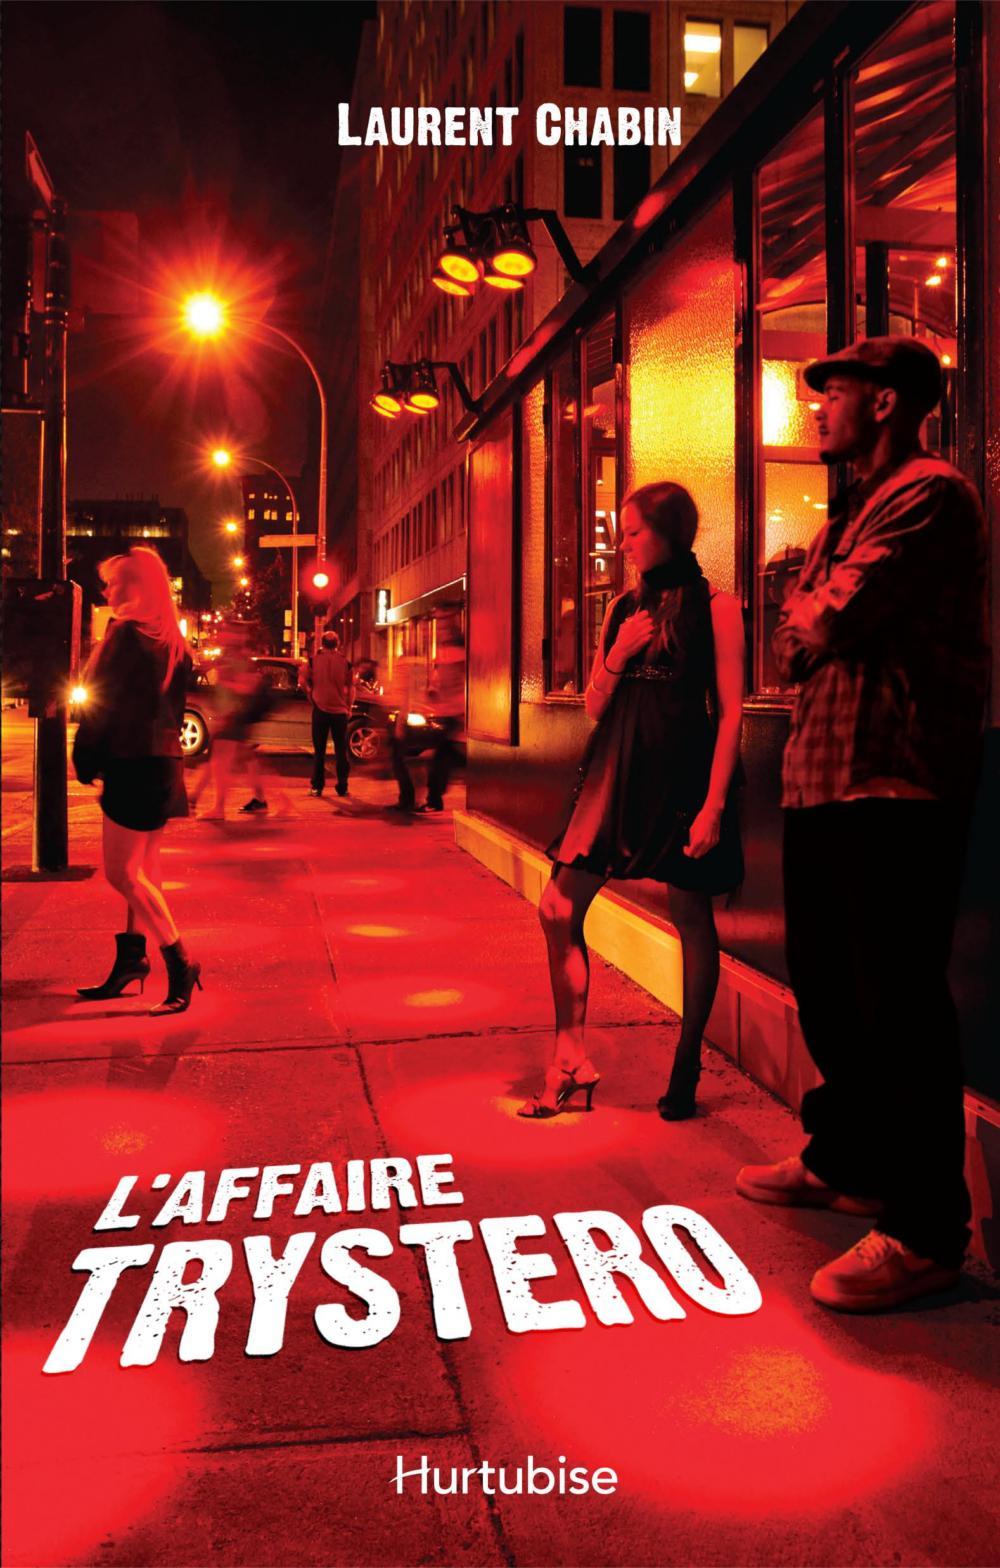 L'Affaire Trystero